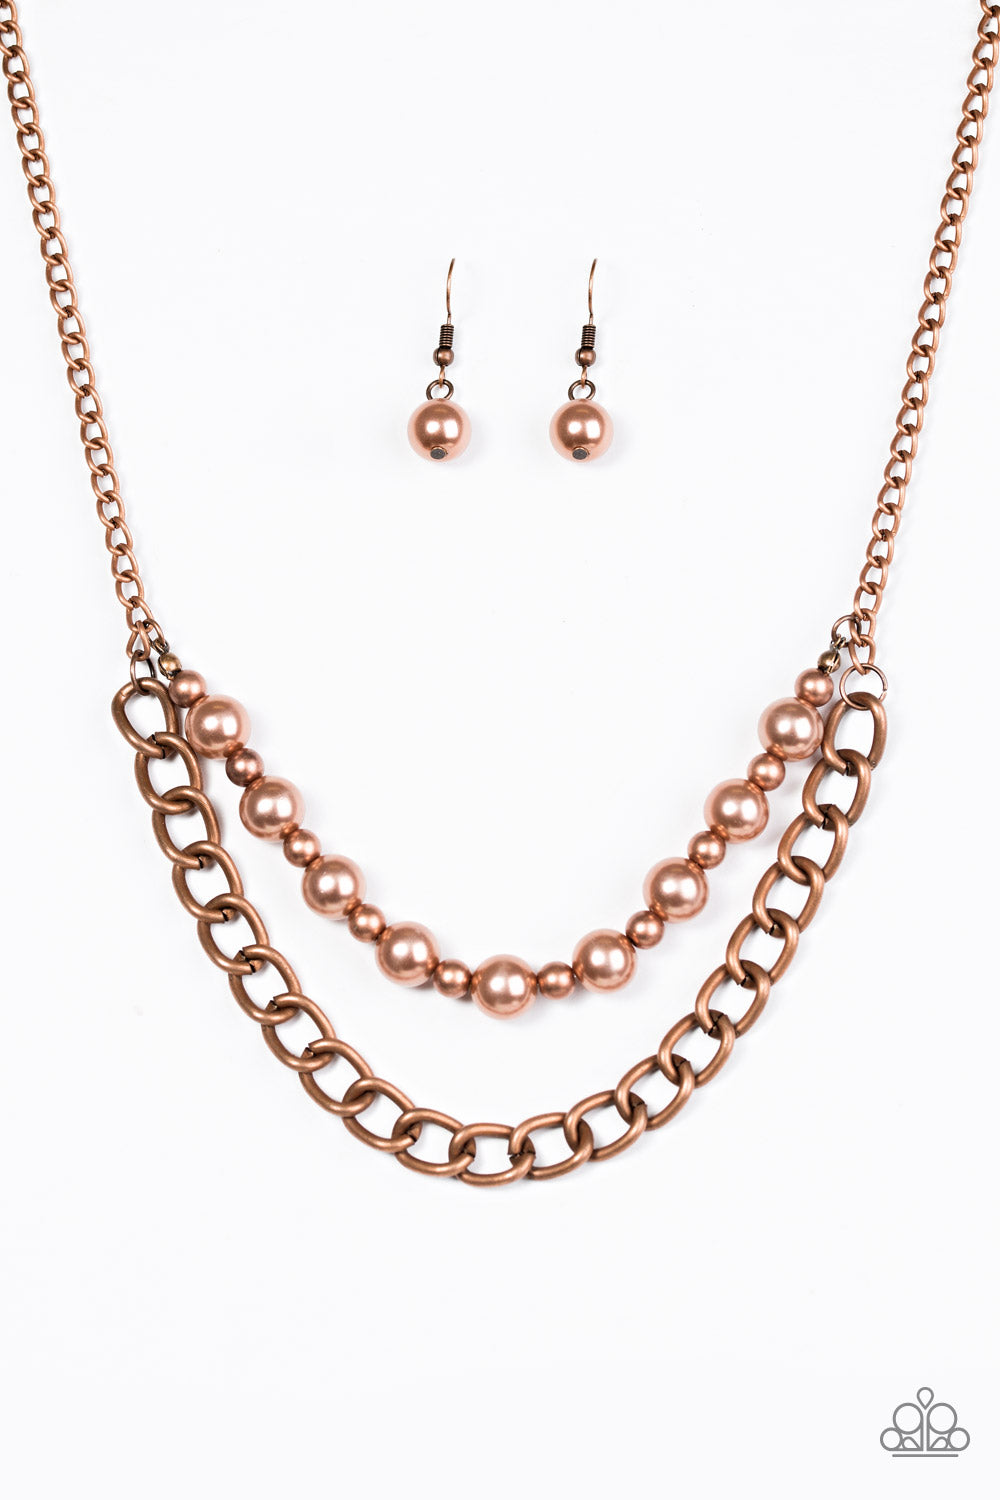 five-dollar-jewelry-glam-and-grind-copper-necklace-paparazzi-accessories